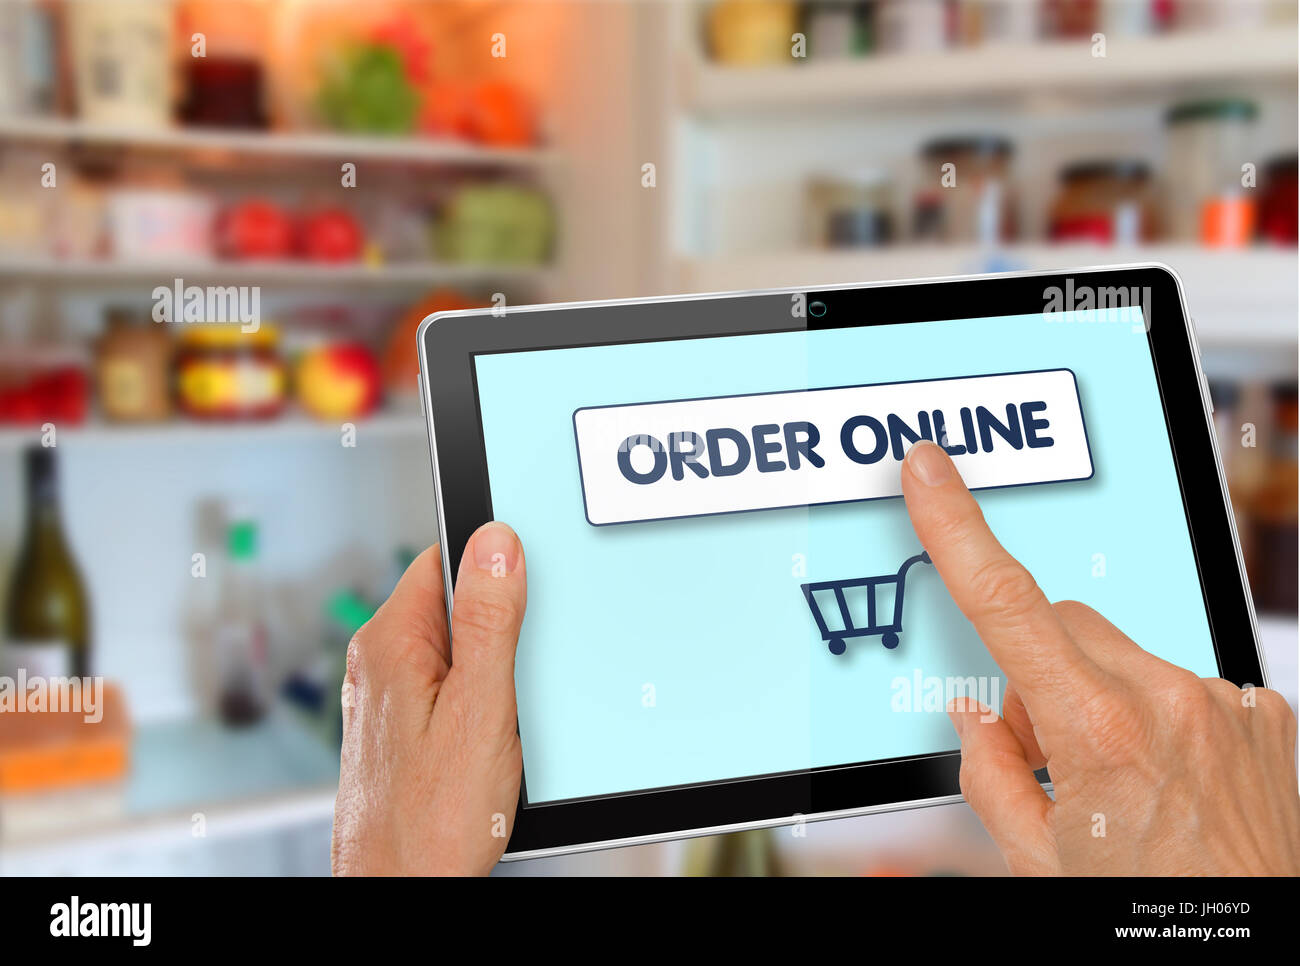 75617f5ea Online Supermarket Shopping Hands with computer tablet shopping cart icon  in front of refrigerator - Stock